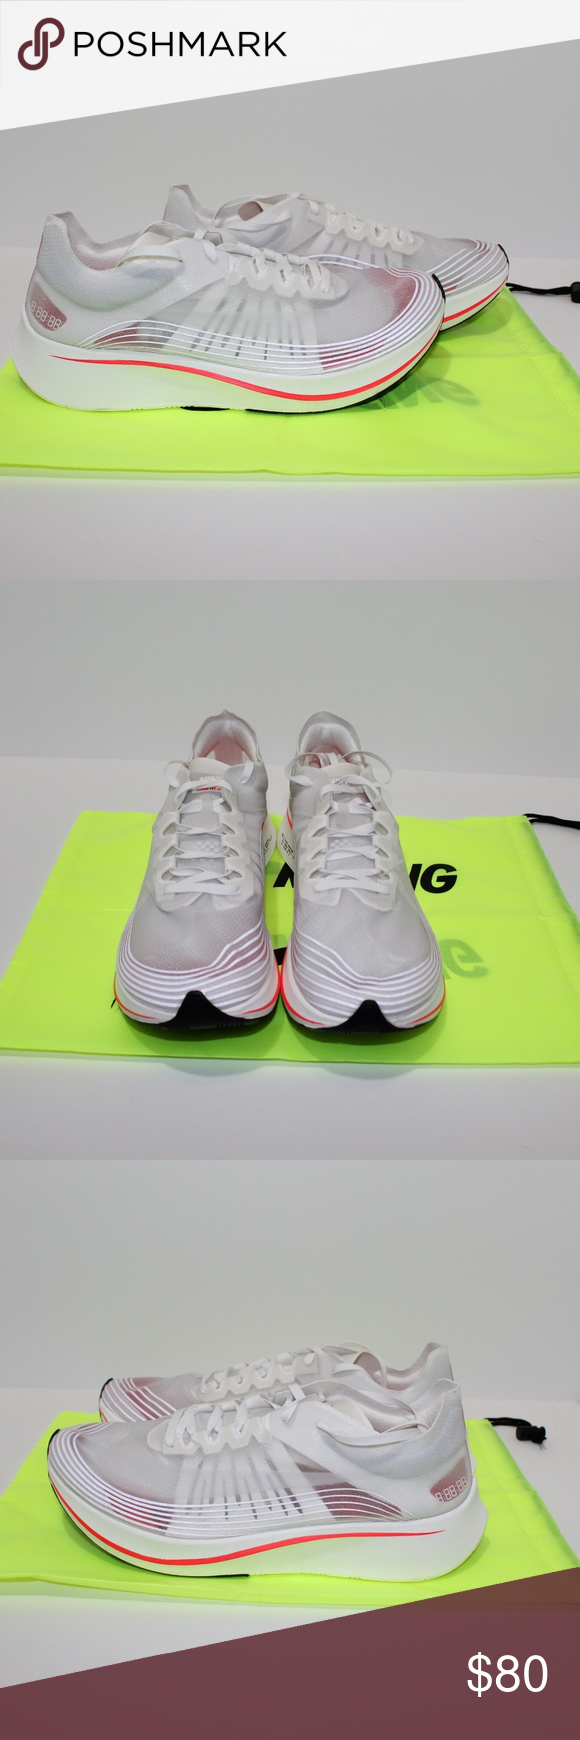 7a6d378777f5 NEW Nike Zoom Fly SP size 12 NEW Nike Zoom Fly SP Sail-Bright Crimson